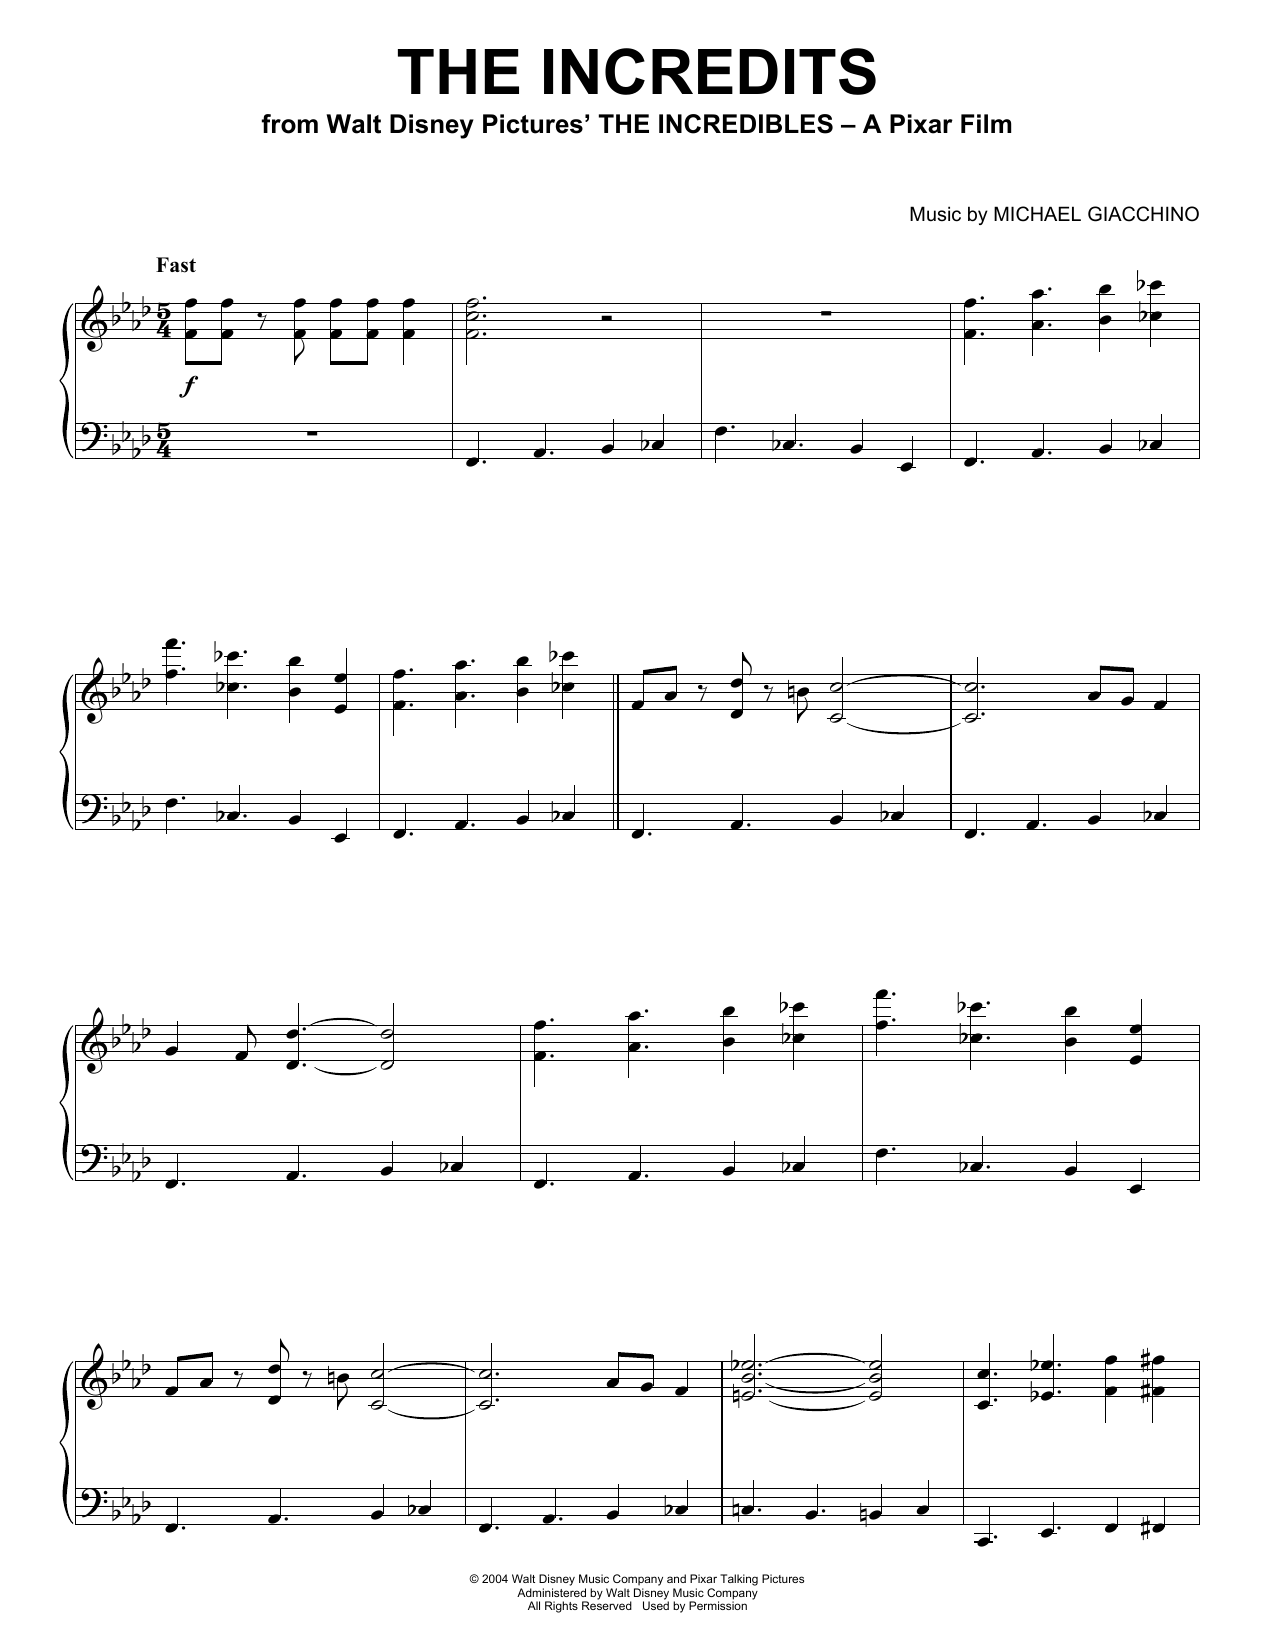 Michael Giacchino The Incredits sheet music notes and chords. Download Printable PDF.